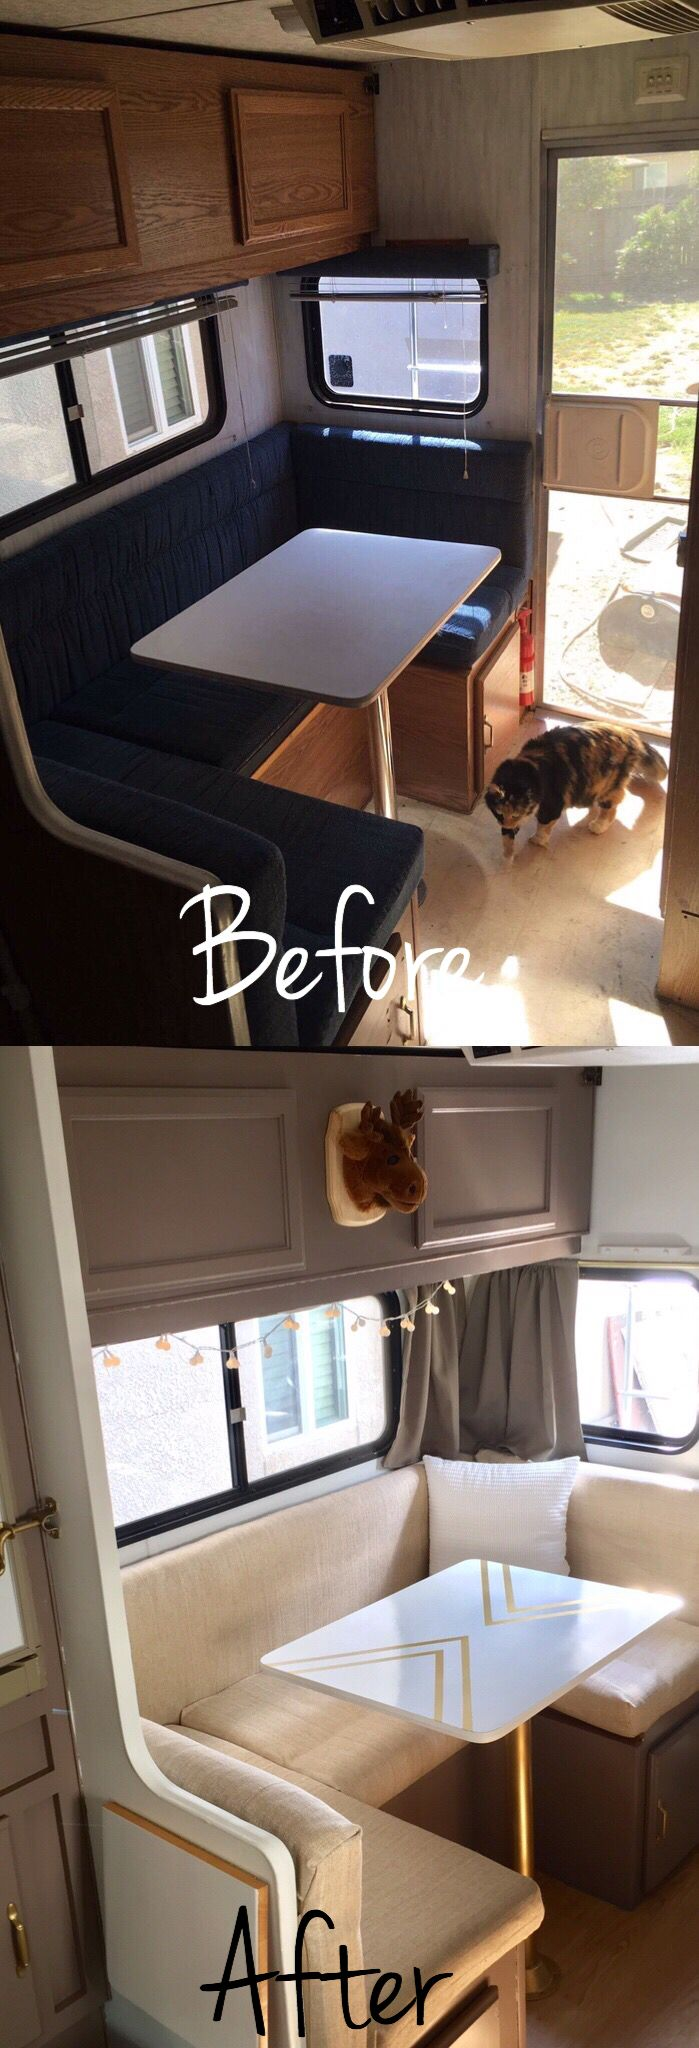 Camper window treatments - Truck Camper Trailer Remodel Before And After Insta_sara